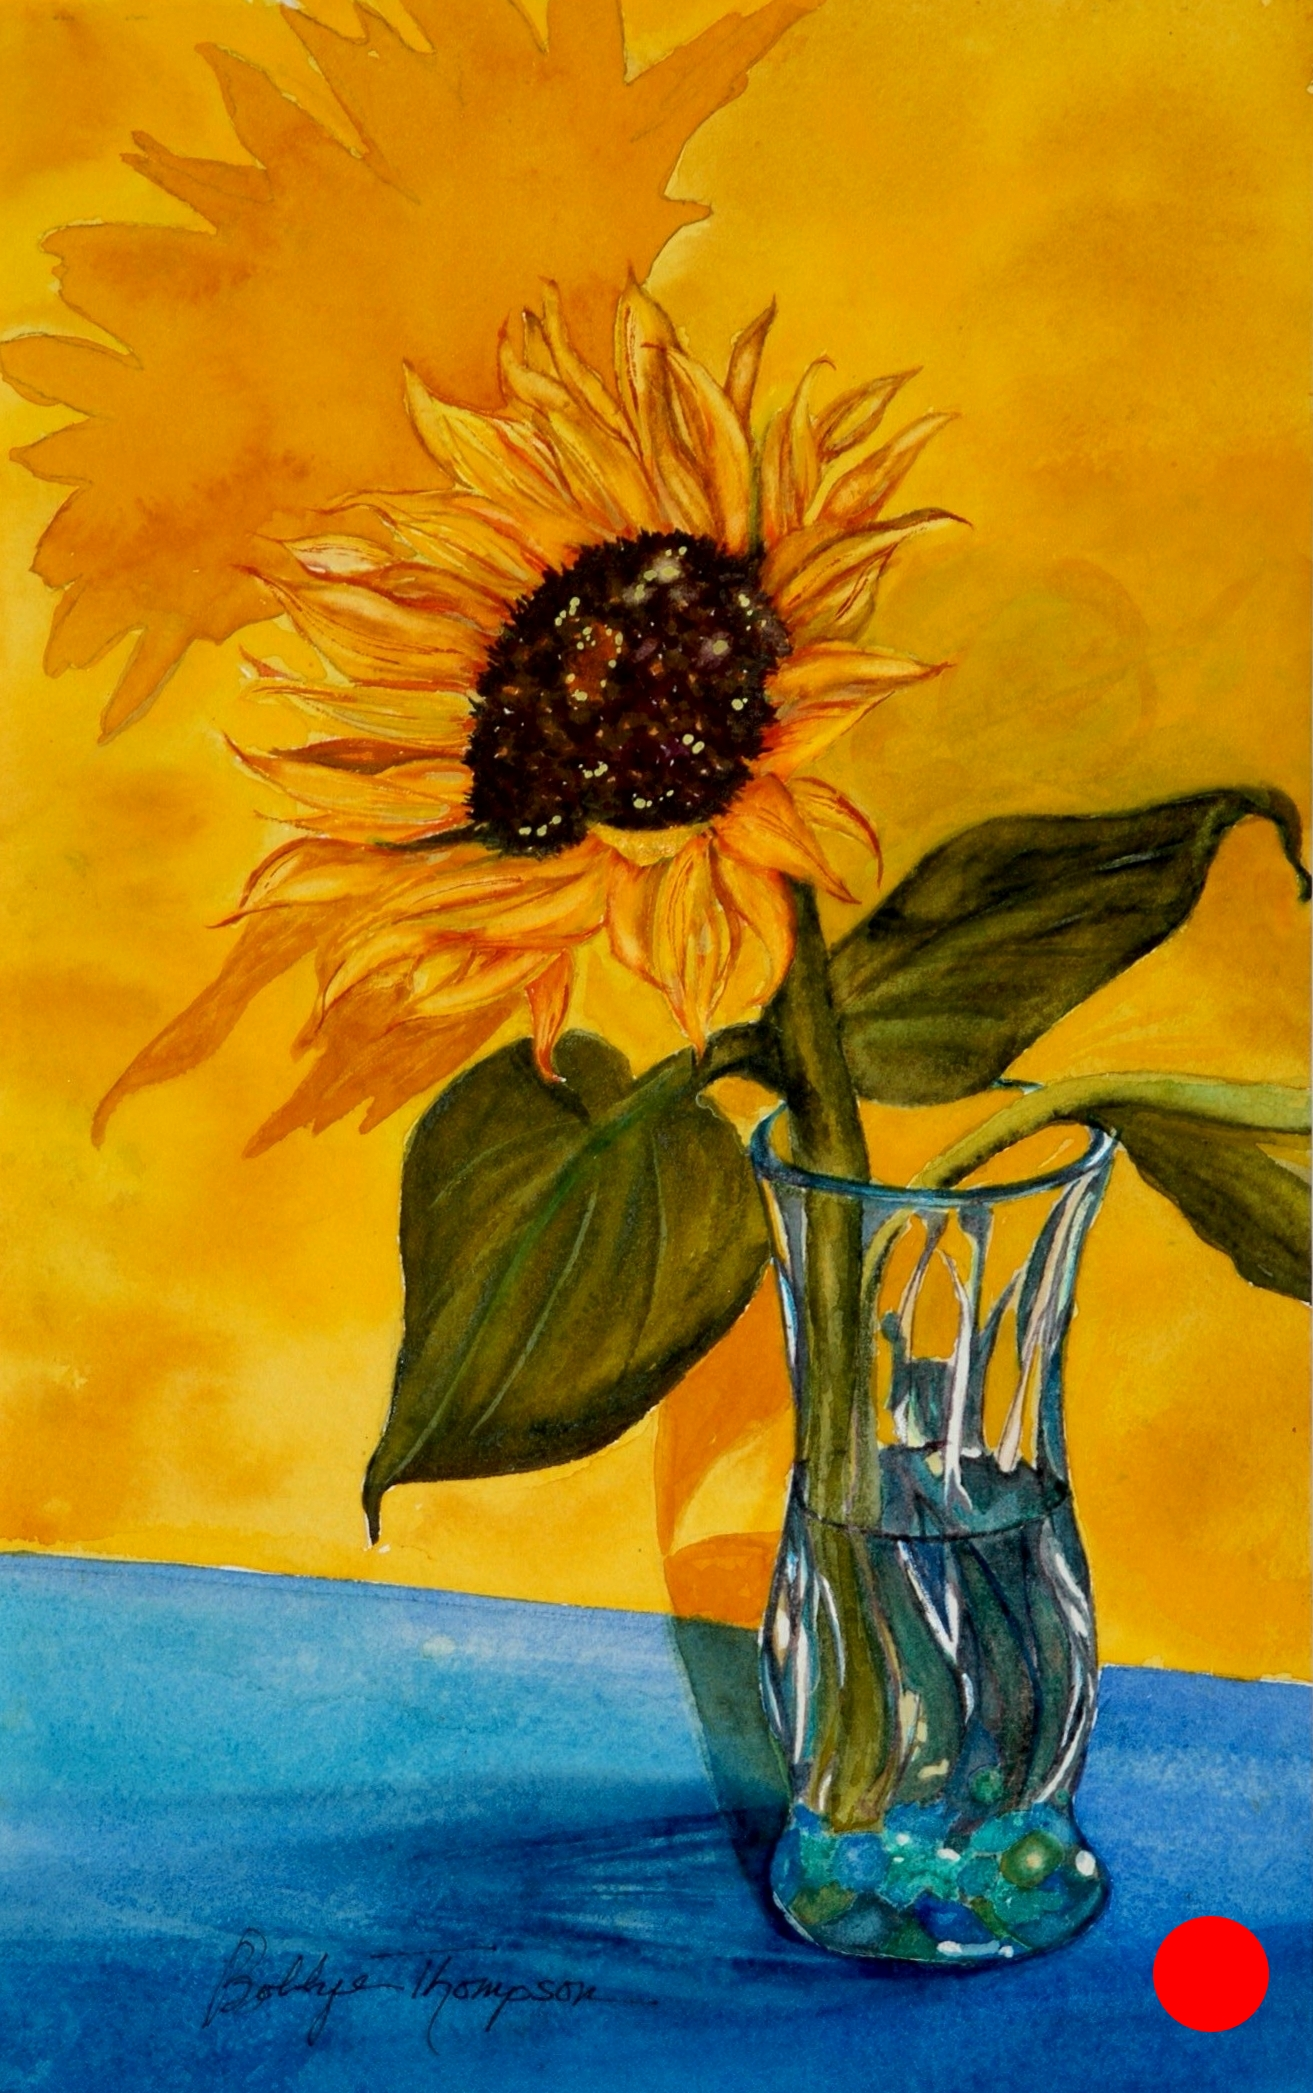 Sunflower and Shadows